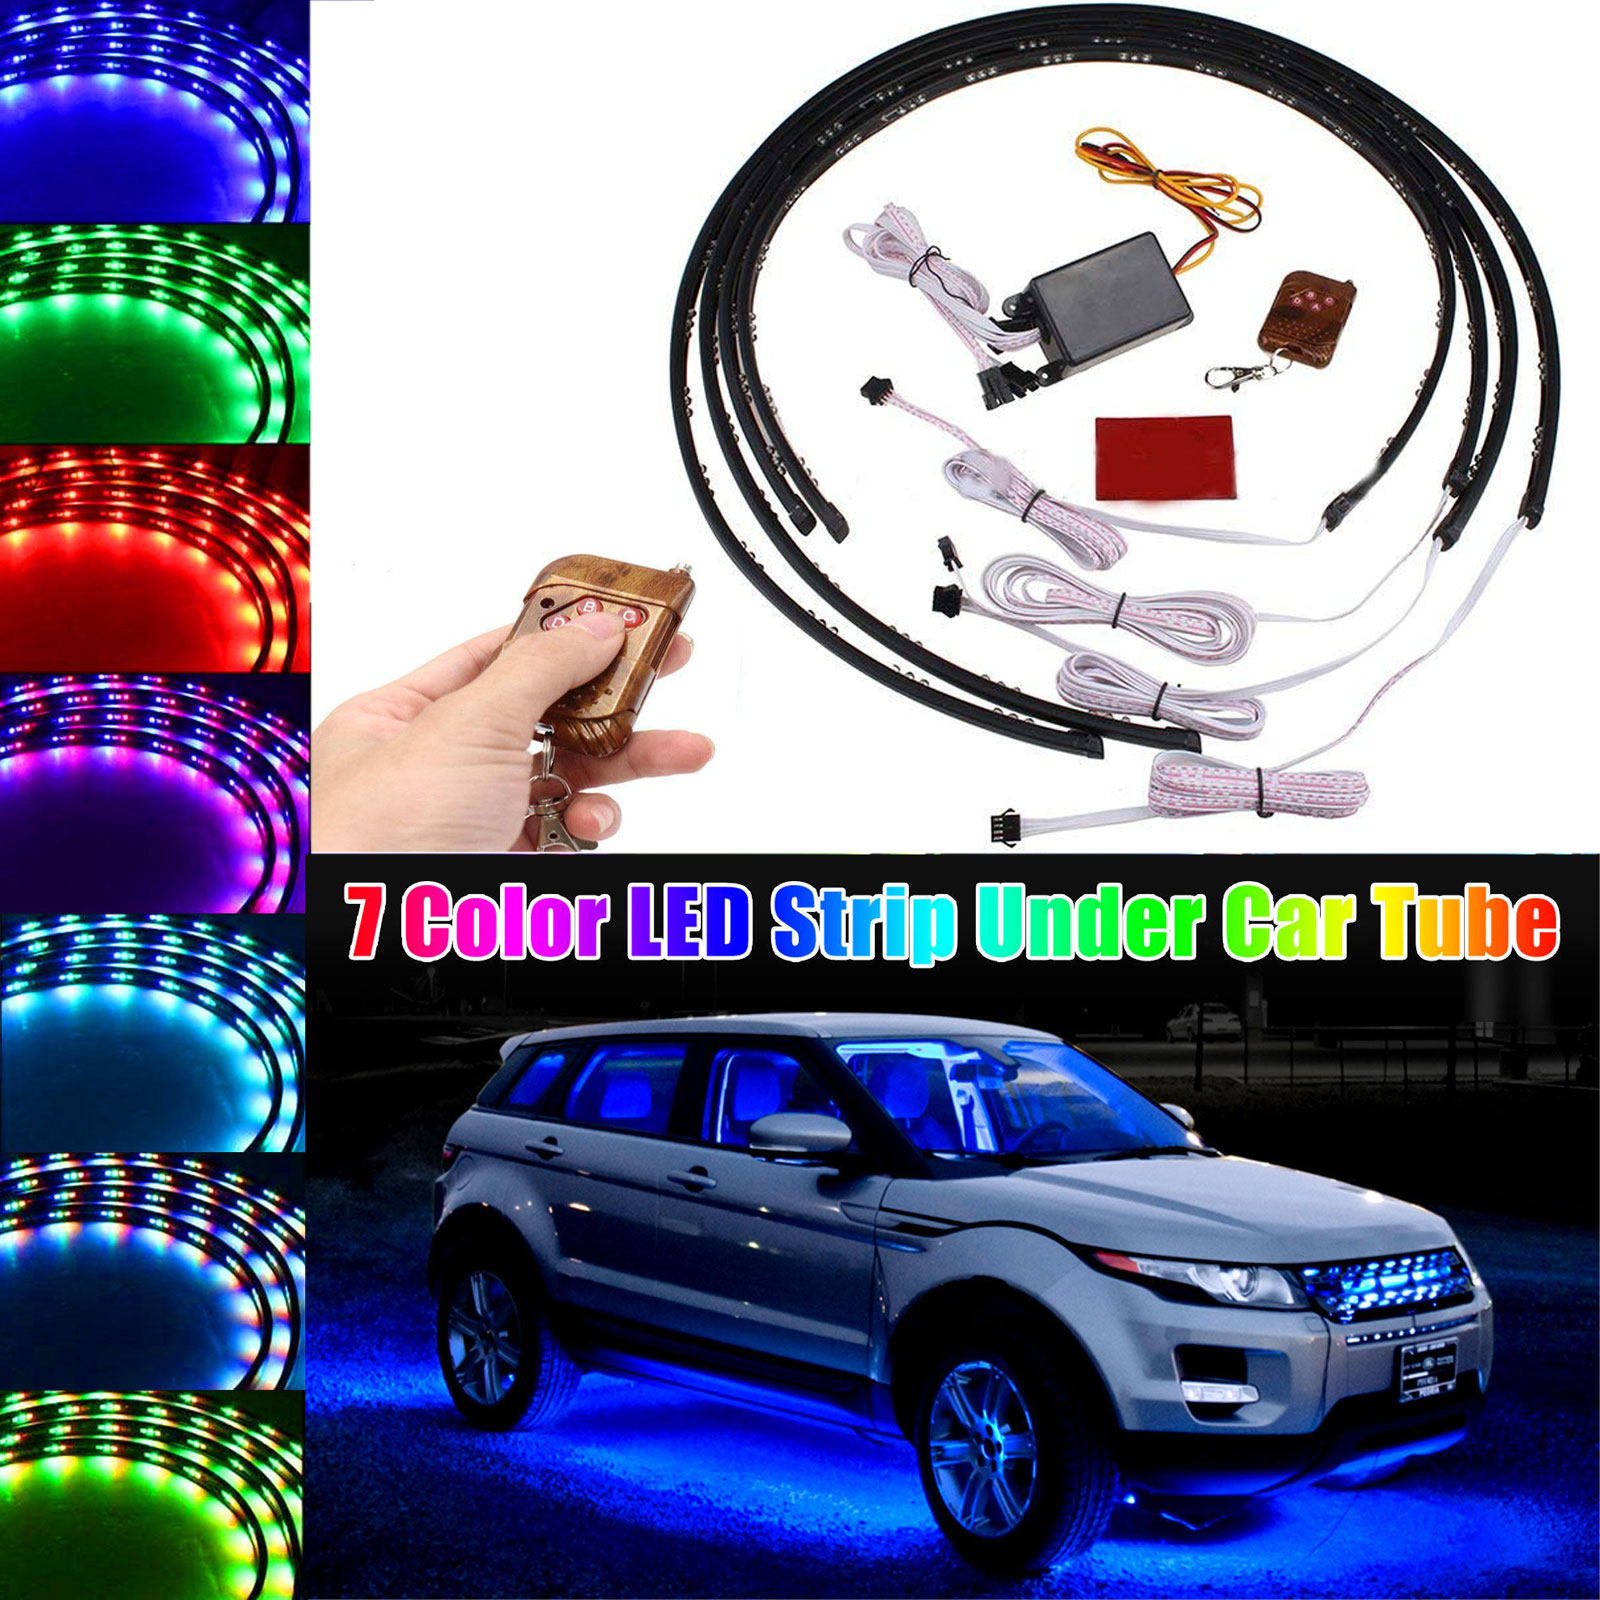 Led Lights For Cars >> Car Led Lights Strip With Remote 252 Leds Waterproof 7 Color Led Strip Under Car Tube Underbody System Neon Lights W Remote Control